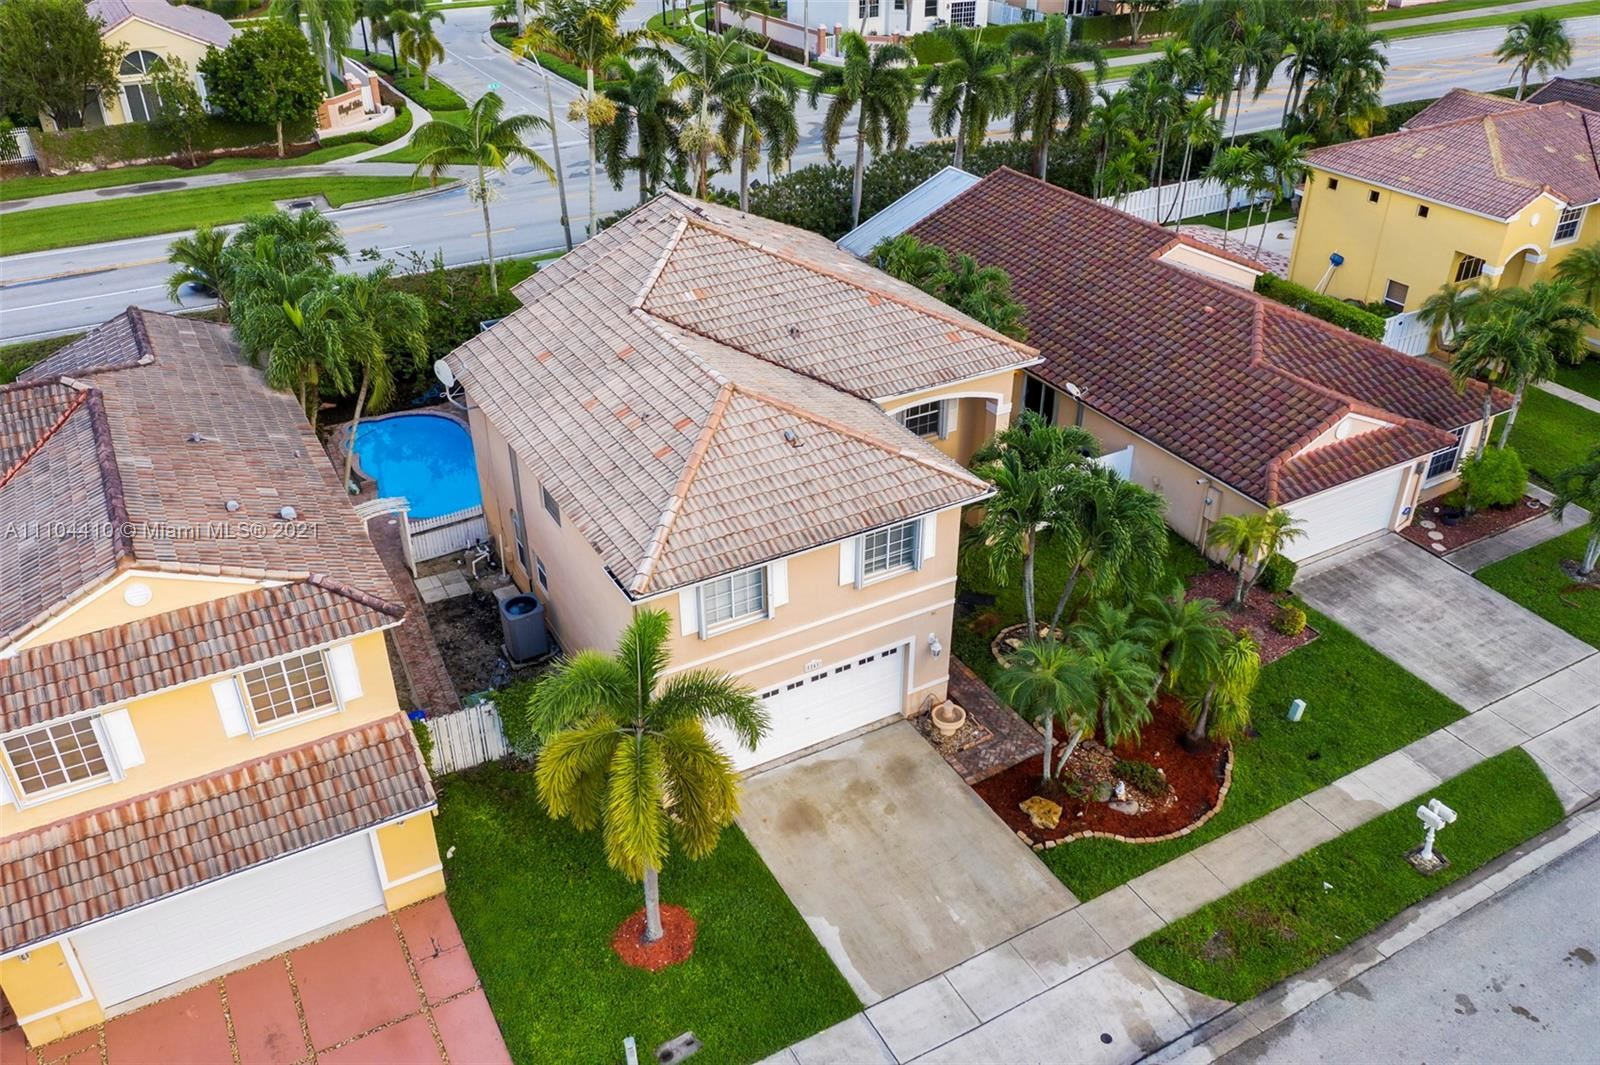 Photo of 1241 NW 187th Ave, Pembroke Pines, FL 33029 (MLS # A11104410)